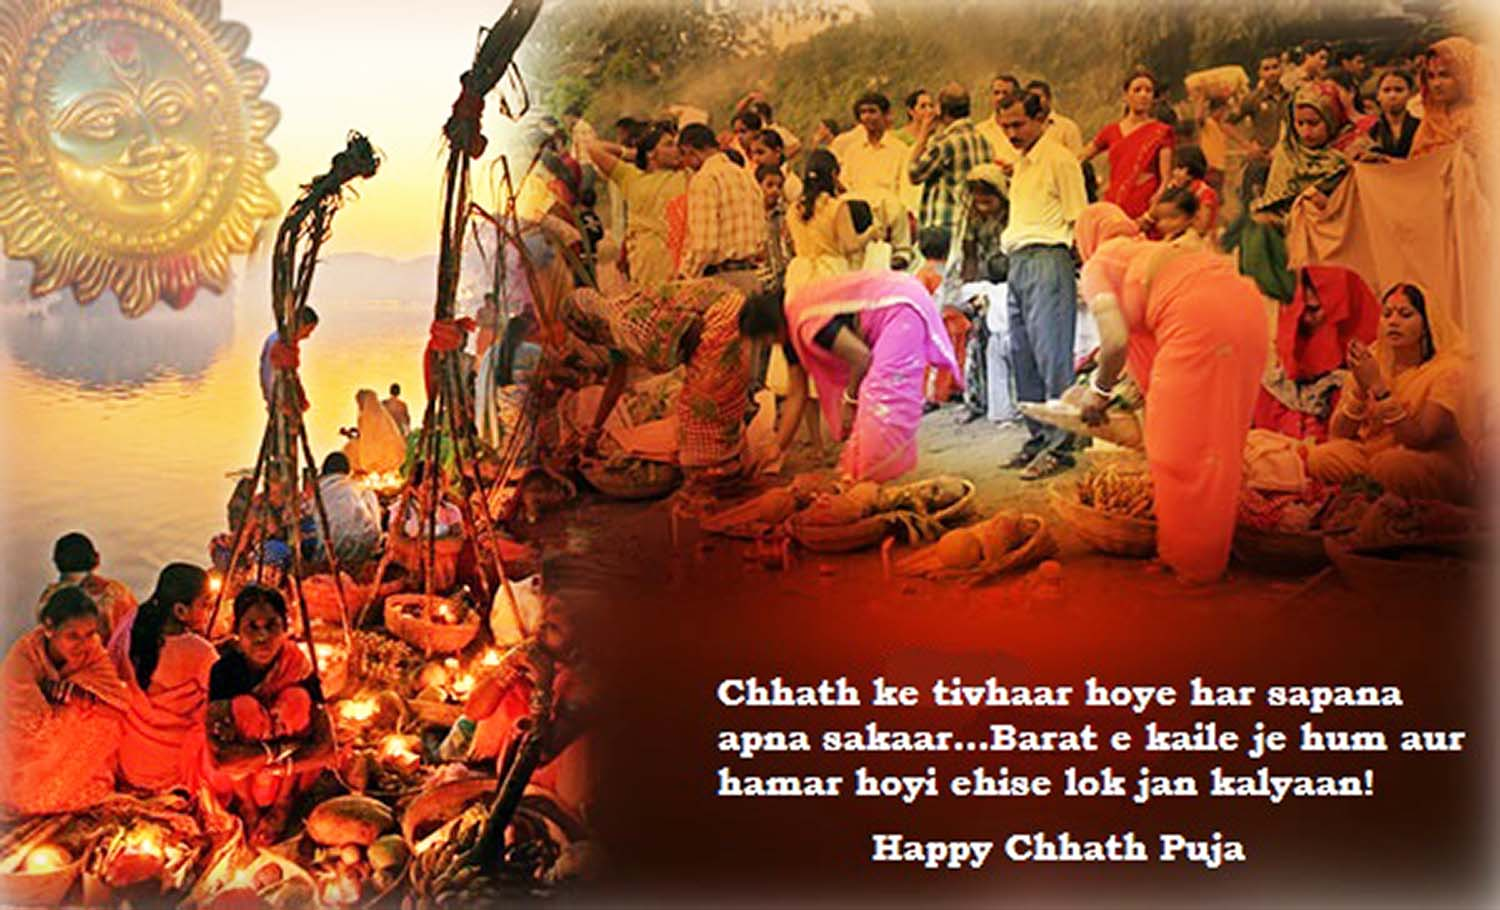 Chhath Puja Wishes In Hindi Font Happy Chhath Puja Sms Shayari